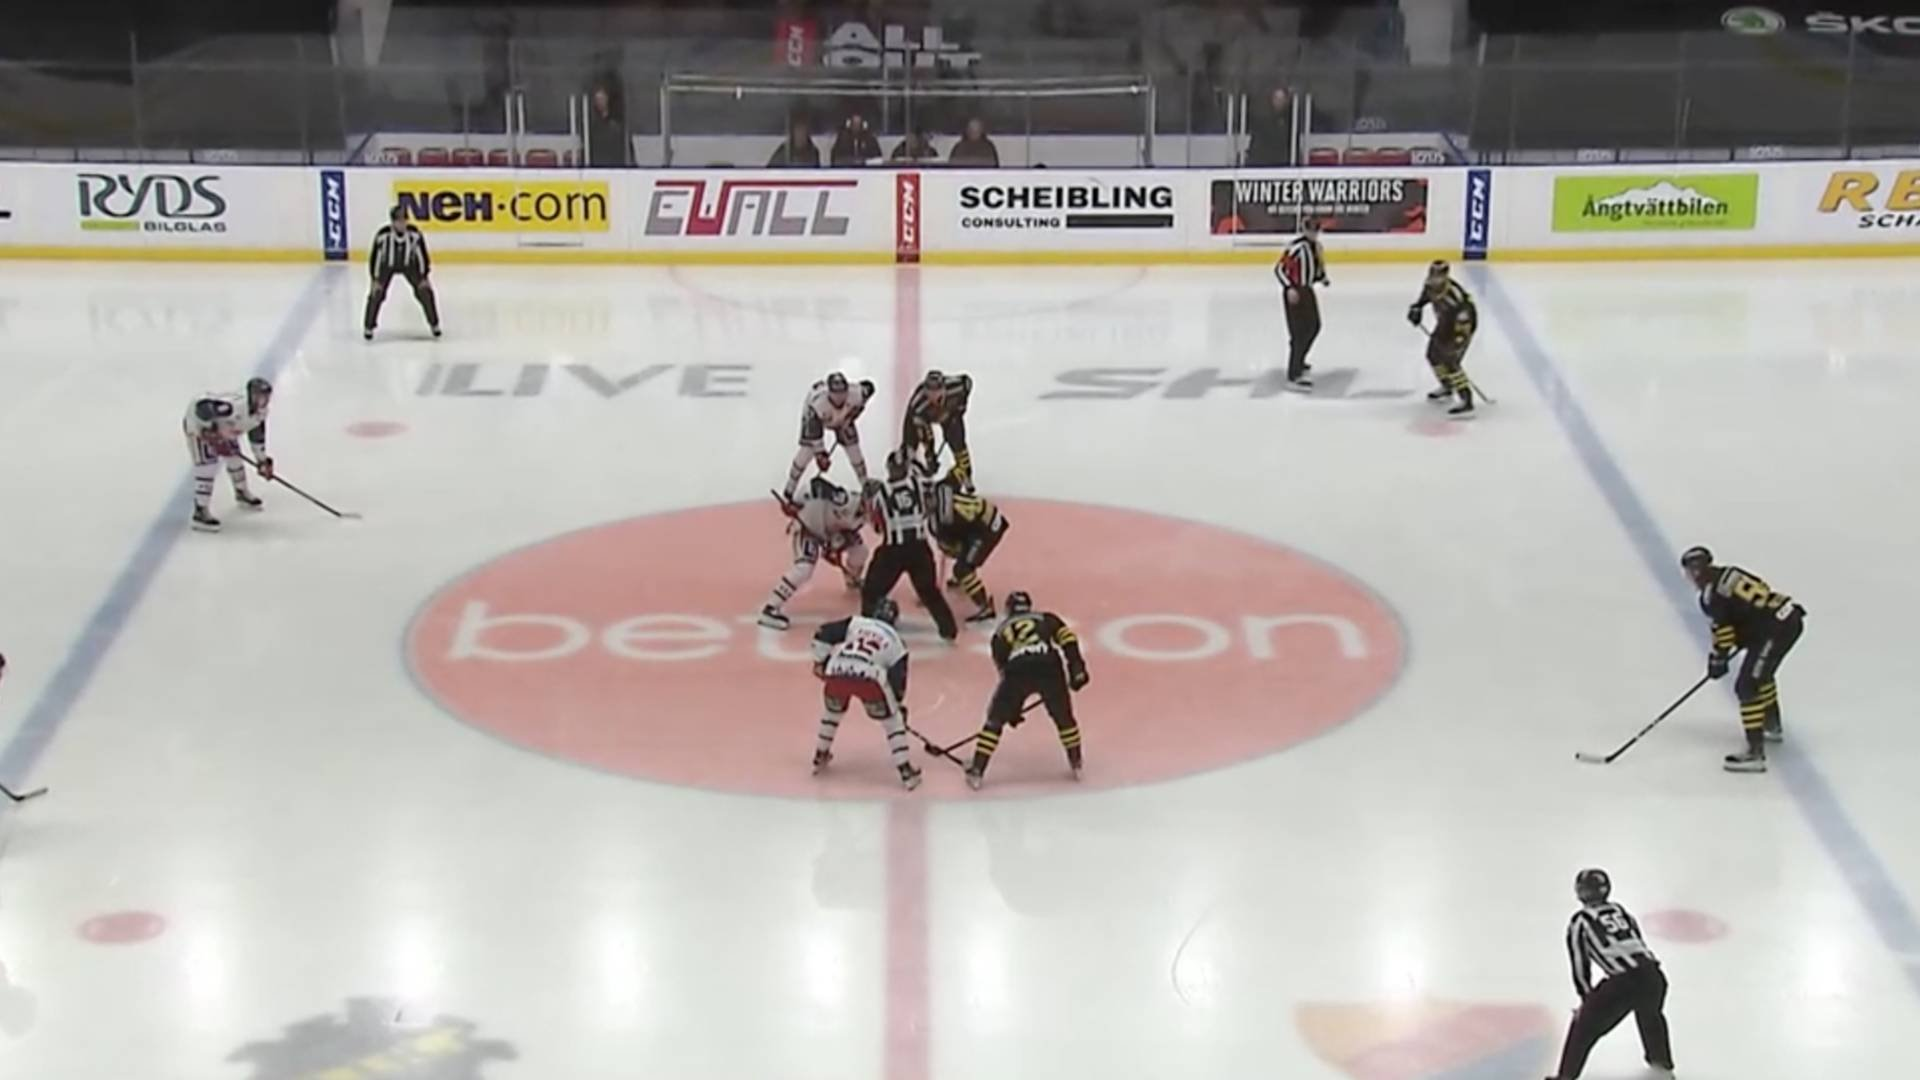 Highlights AIK-VIK